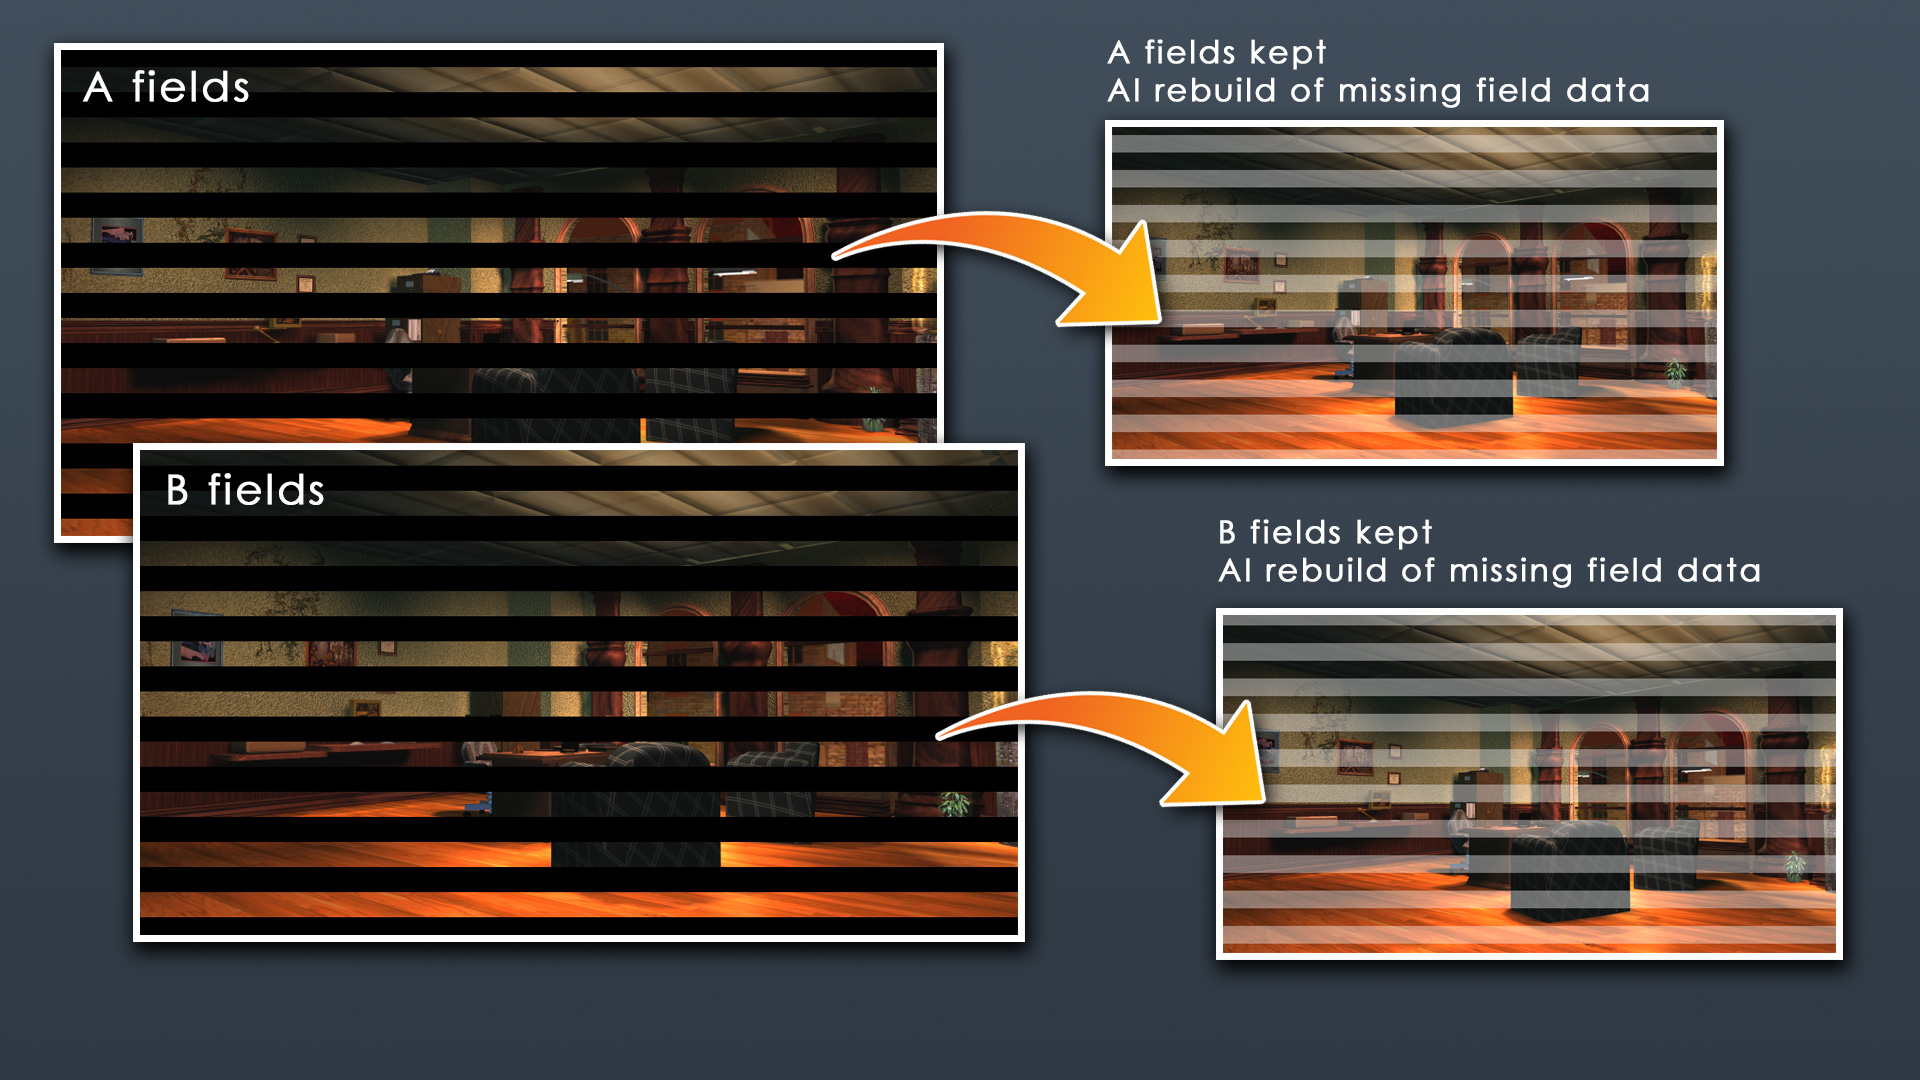 Using both A fields and B fields to perform upscaling, resulting in 60 fps output.